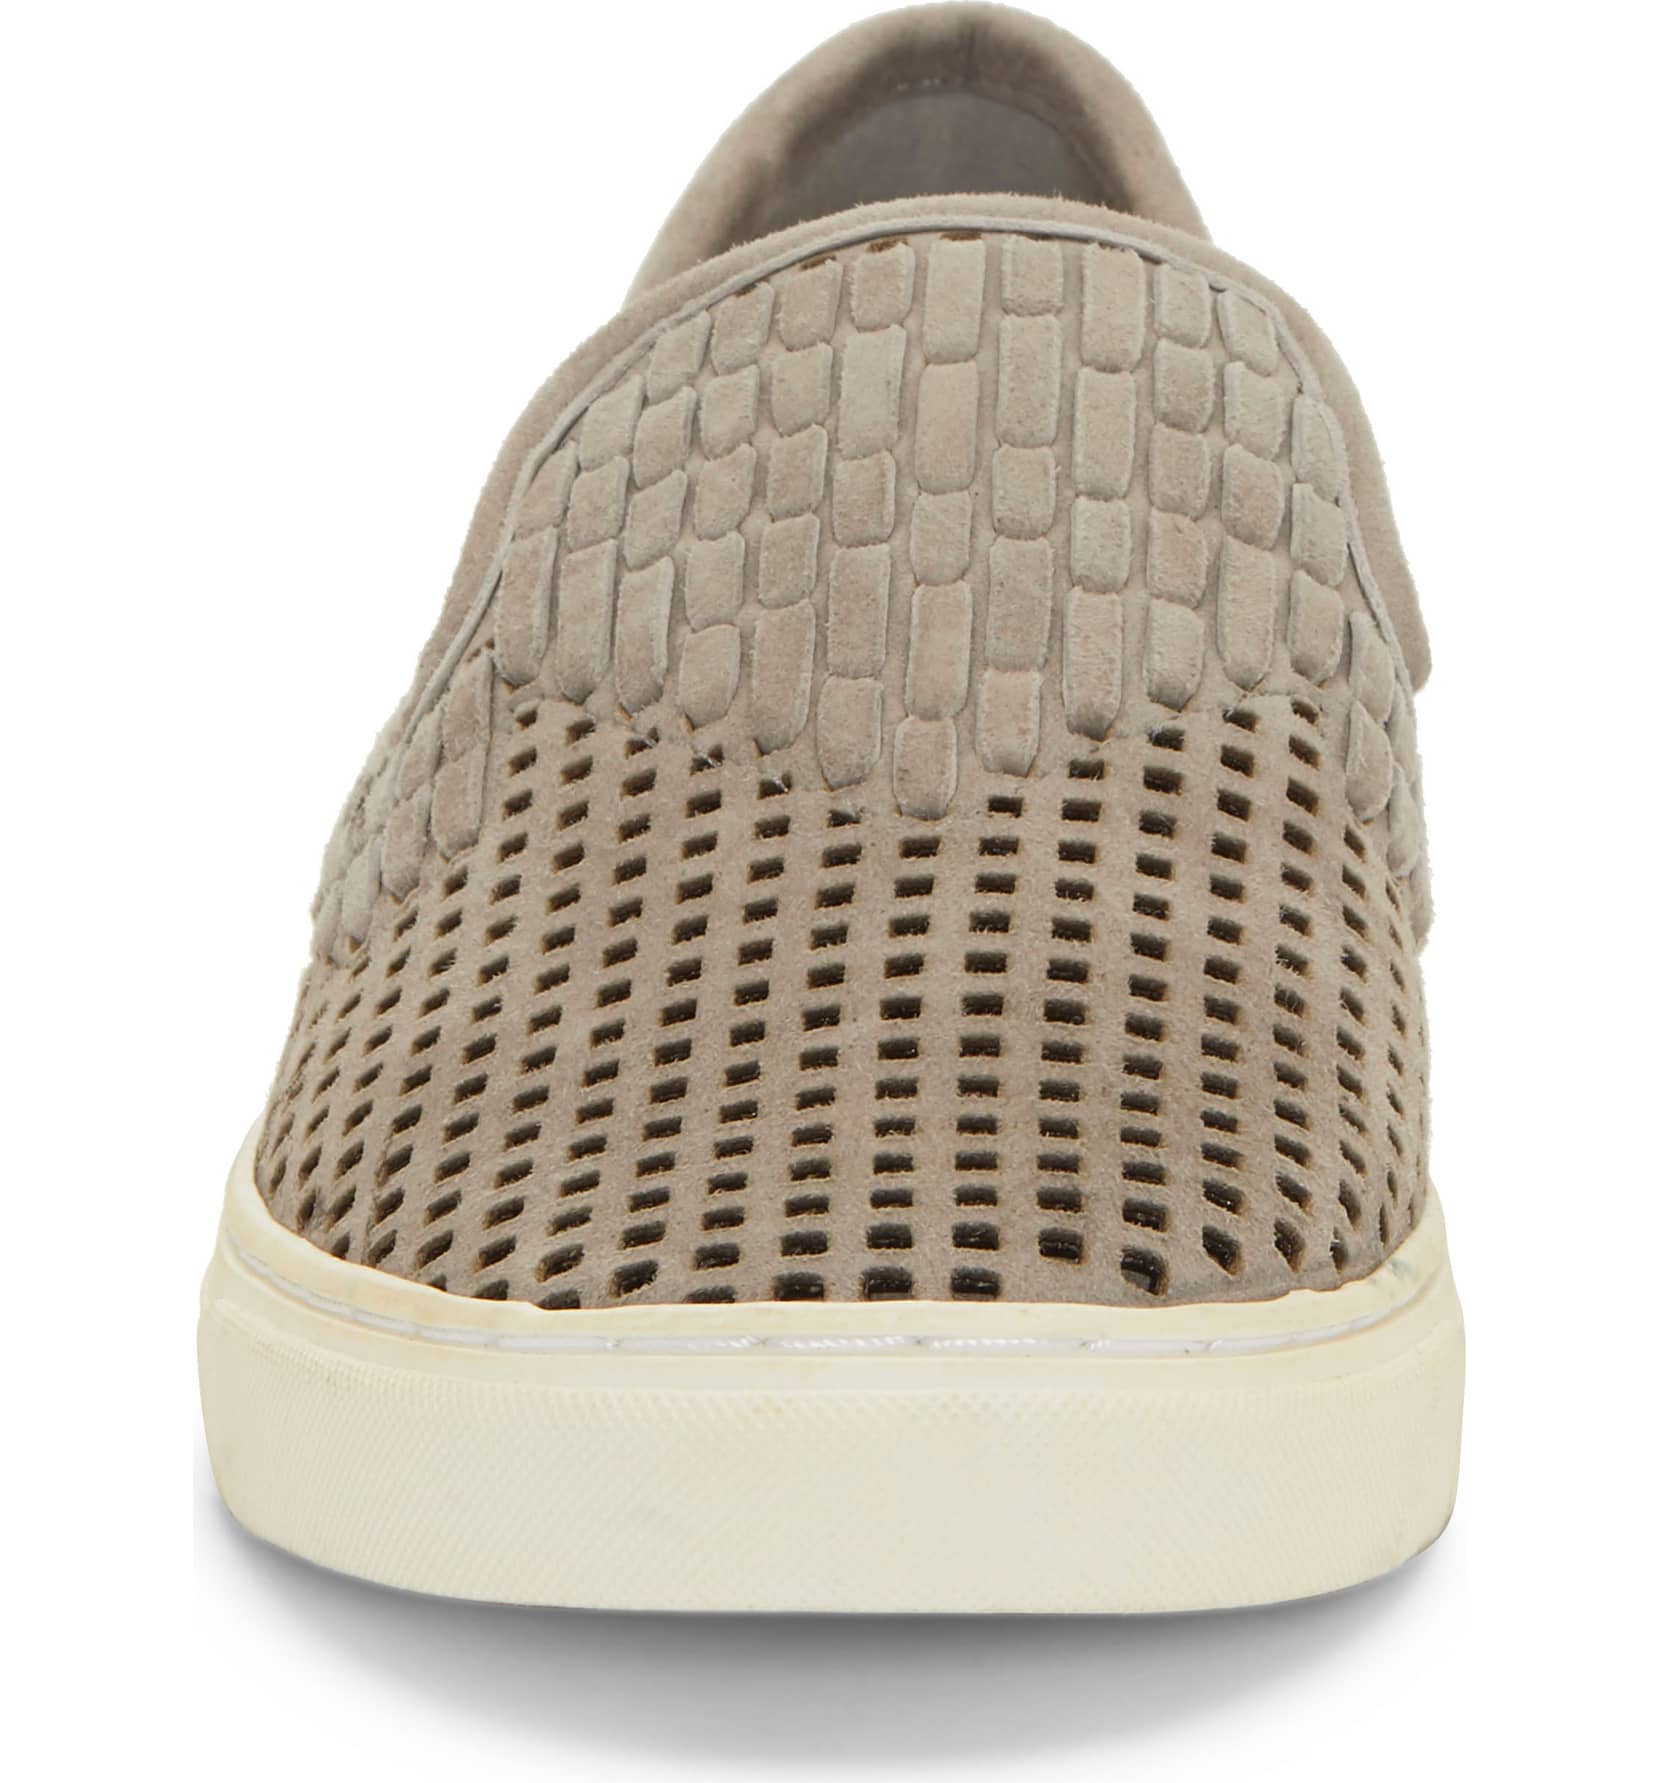 Vince-Camuto-Bristie-Storm-Grey-Leather-Woven-White-Sole-Slip-On-Sneakers thumbnail 18